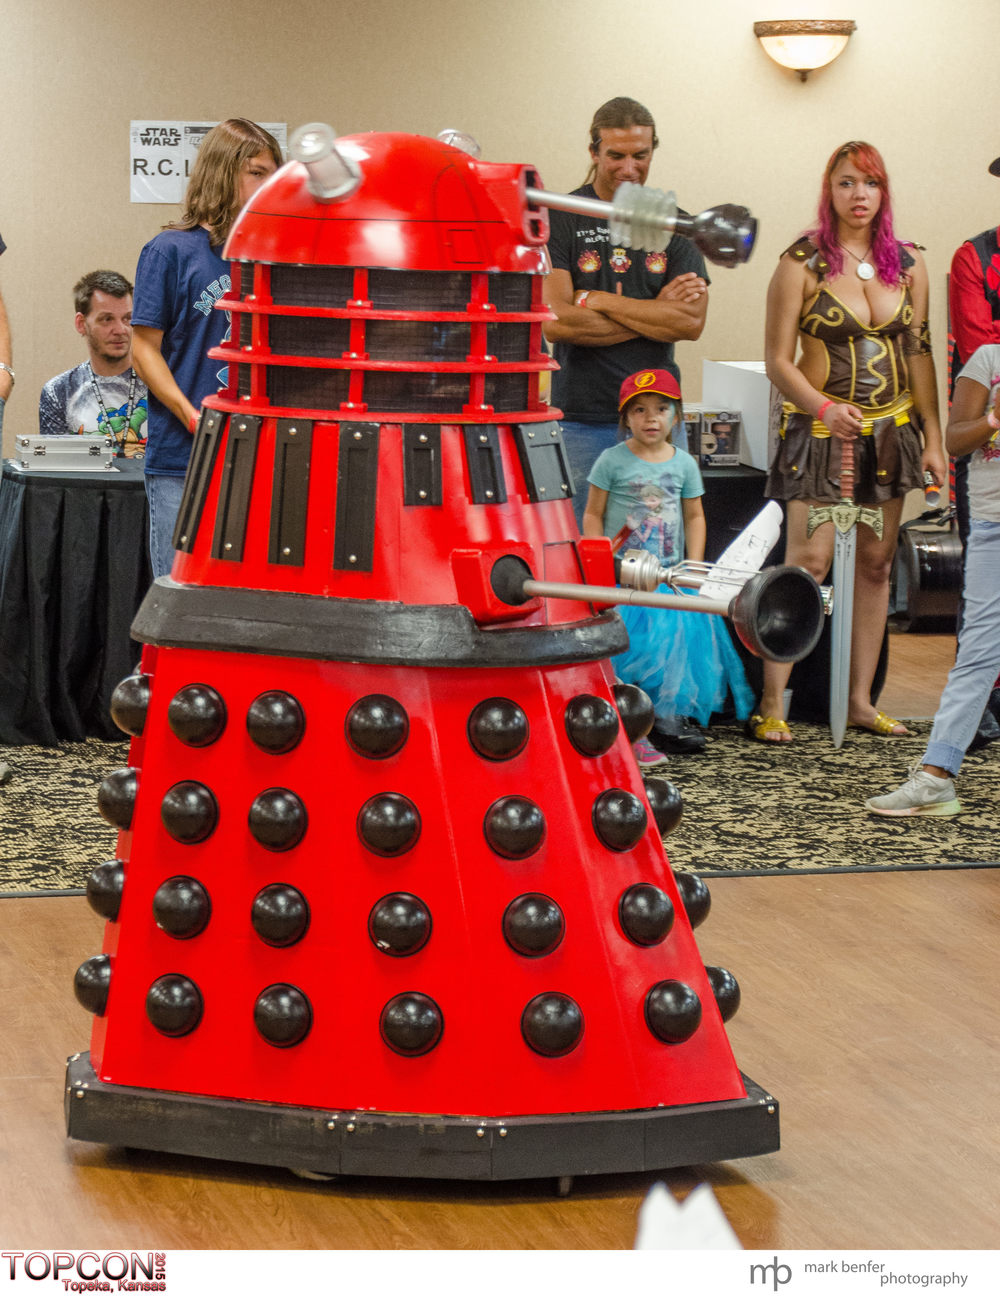 Red Dalek. Cosplay and fun from TOPCON 2015, Topeka, Kansas.